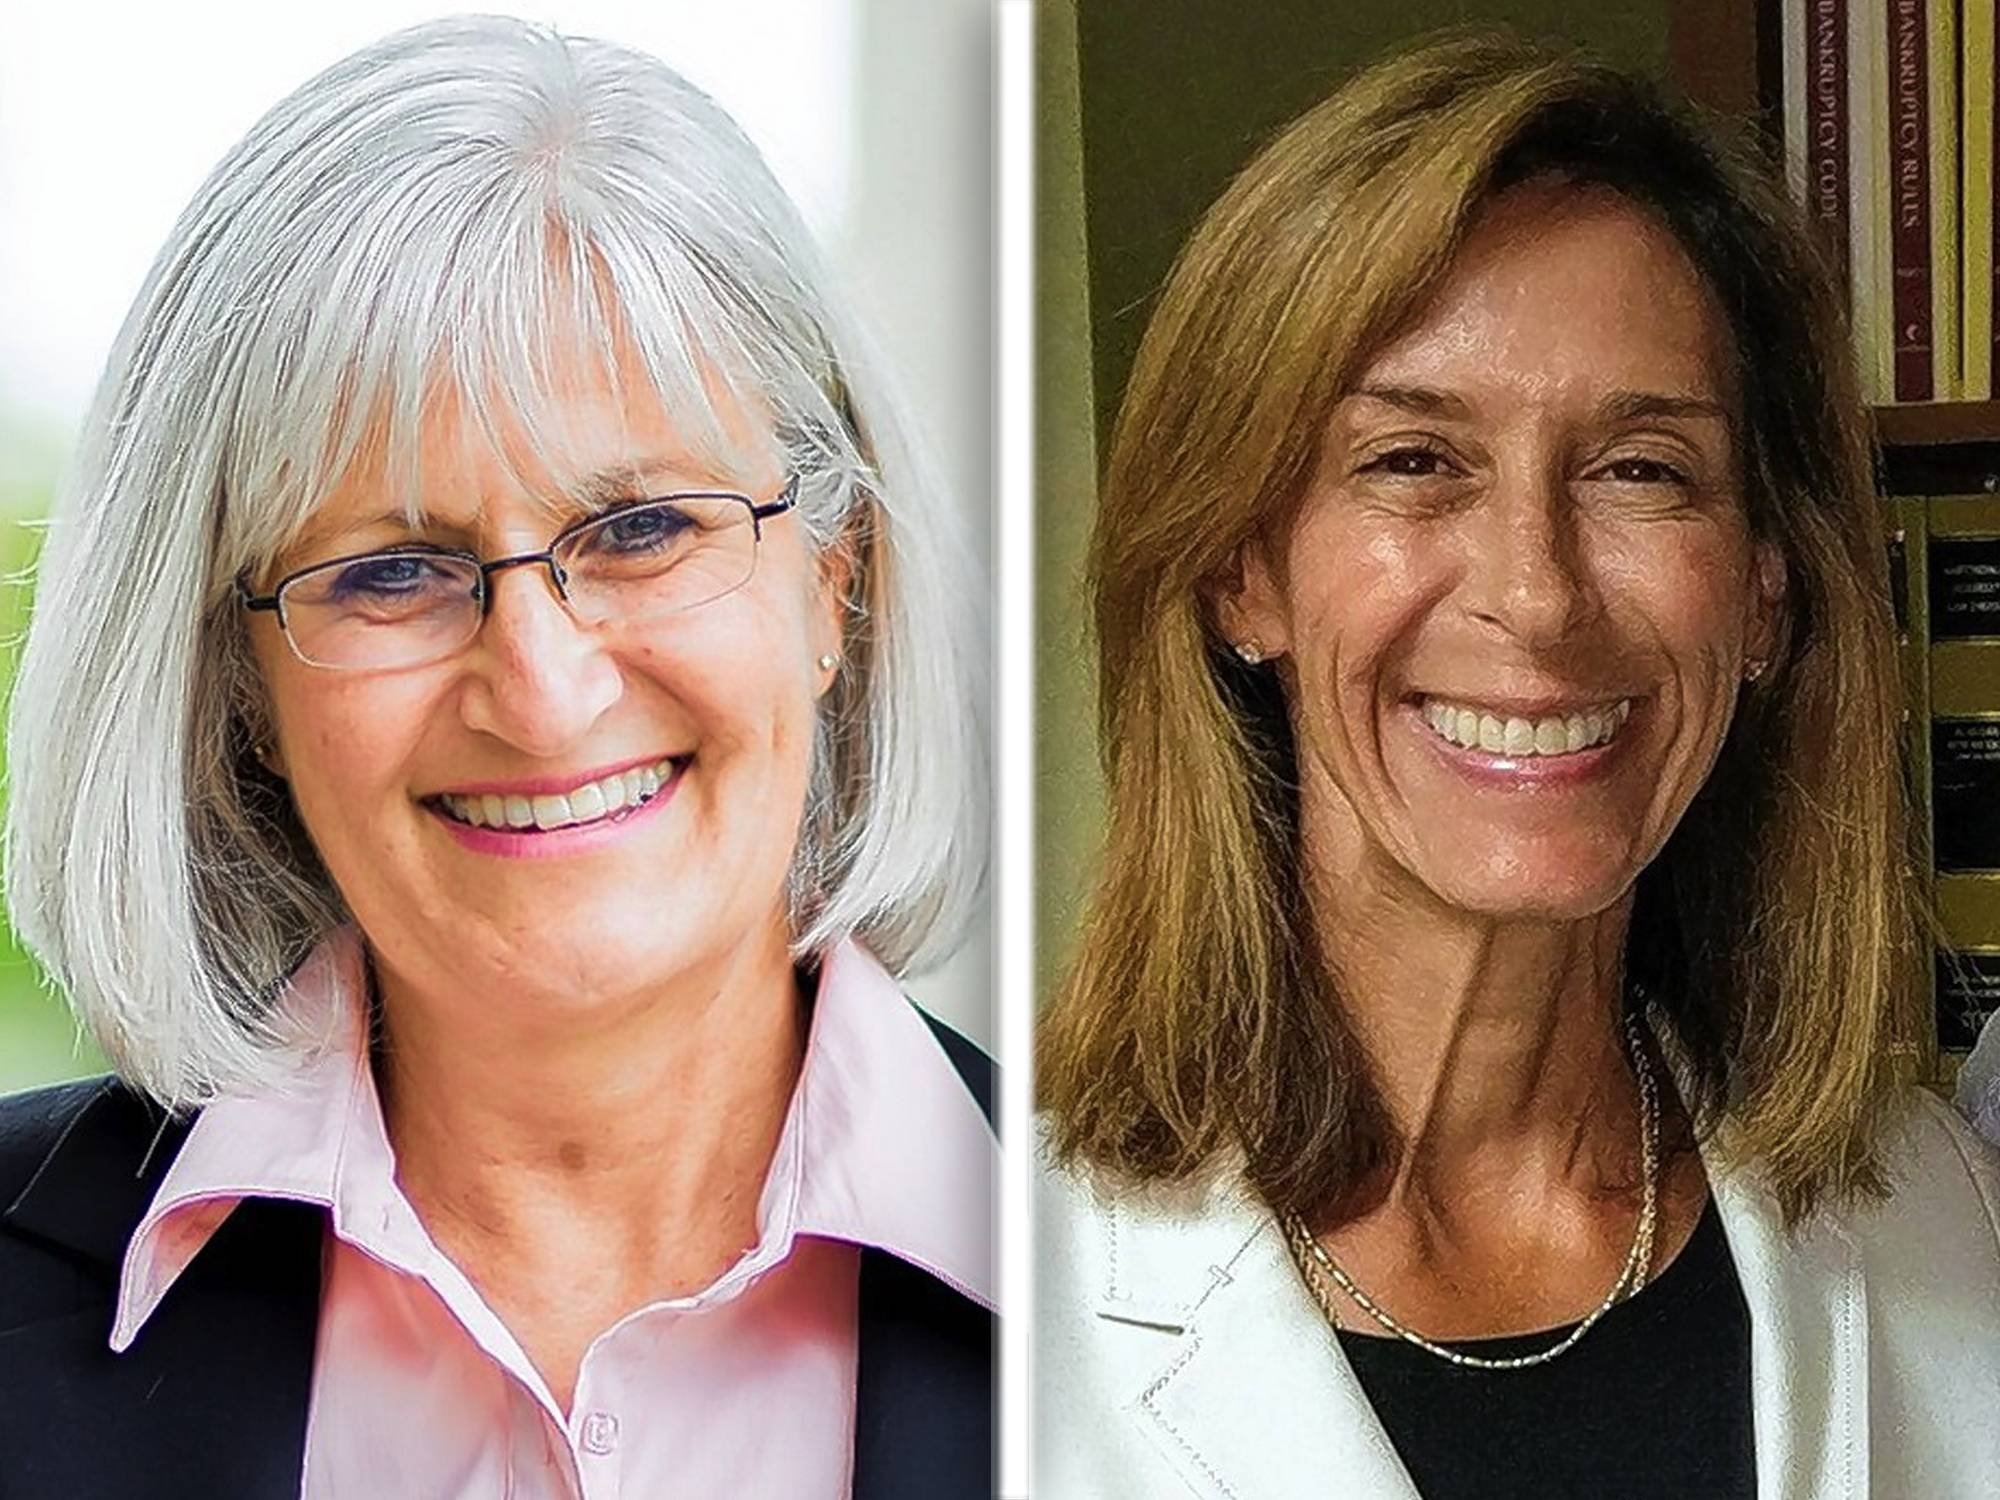 Democrat Mary Edly-Allen, left, has defeated Republican state Rep. Helene Miller Walsh in the 51st House District